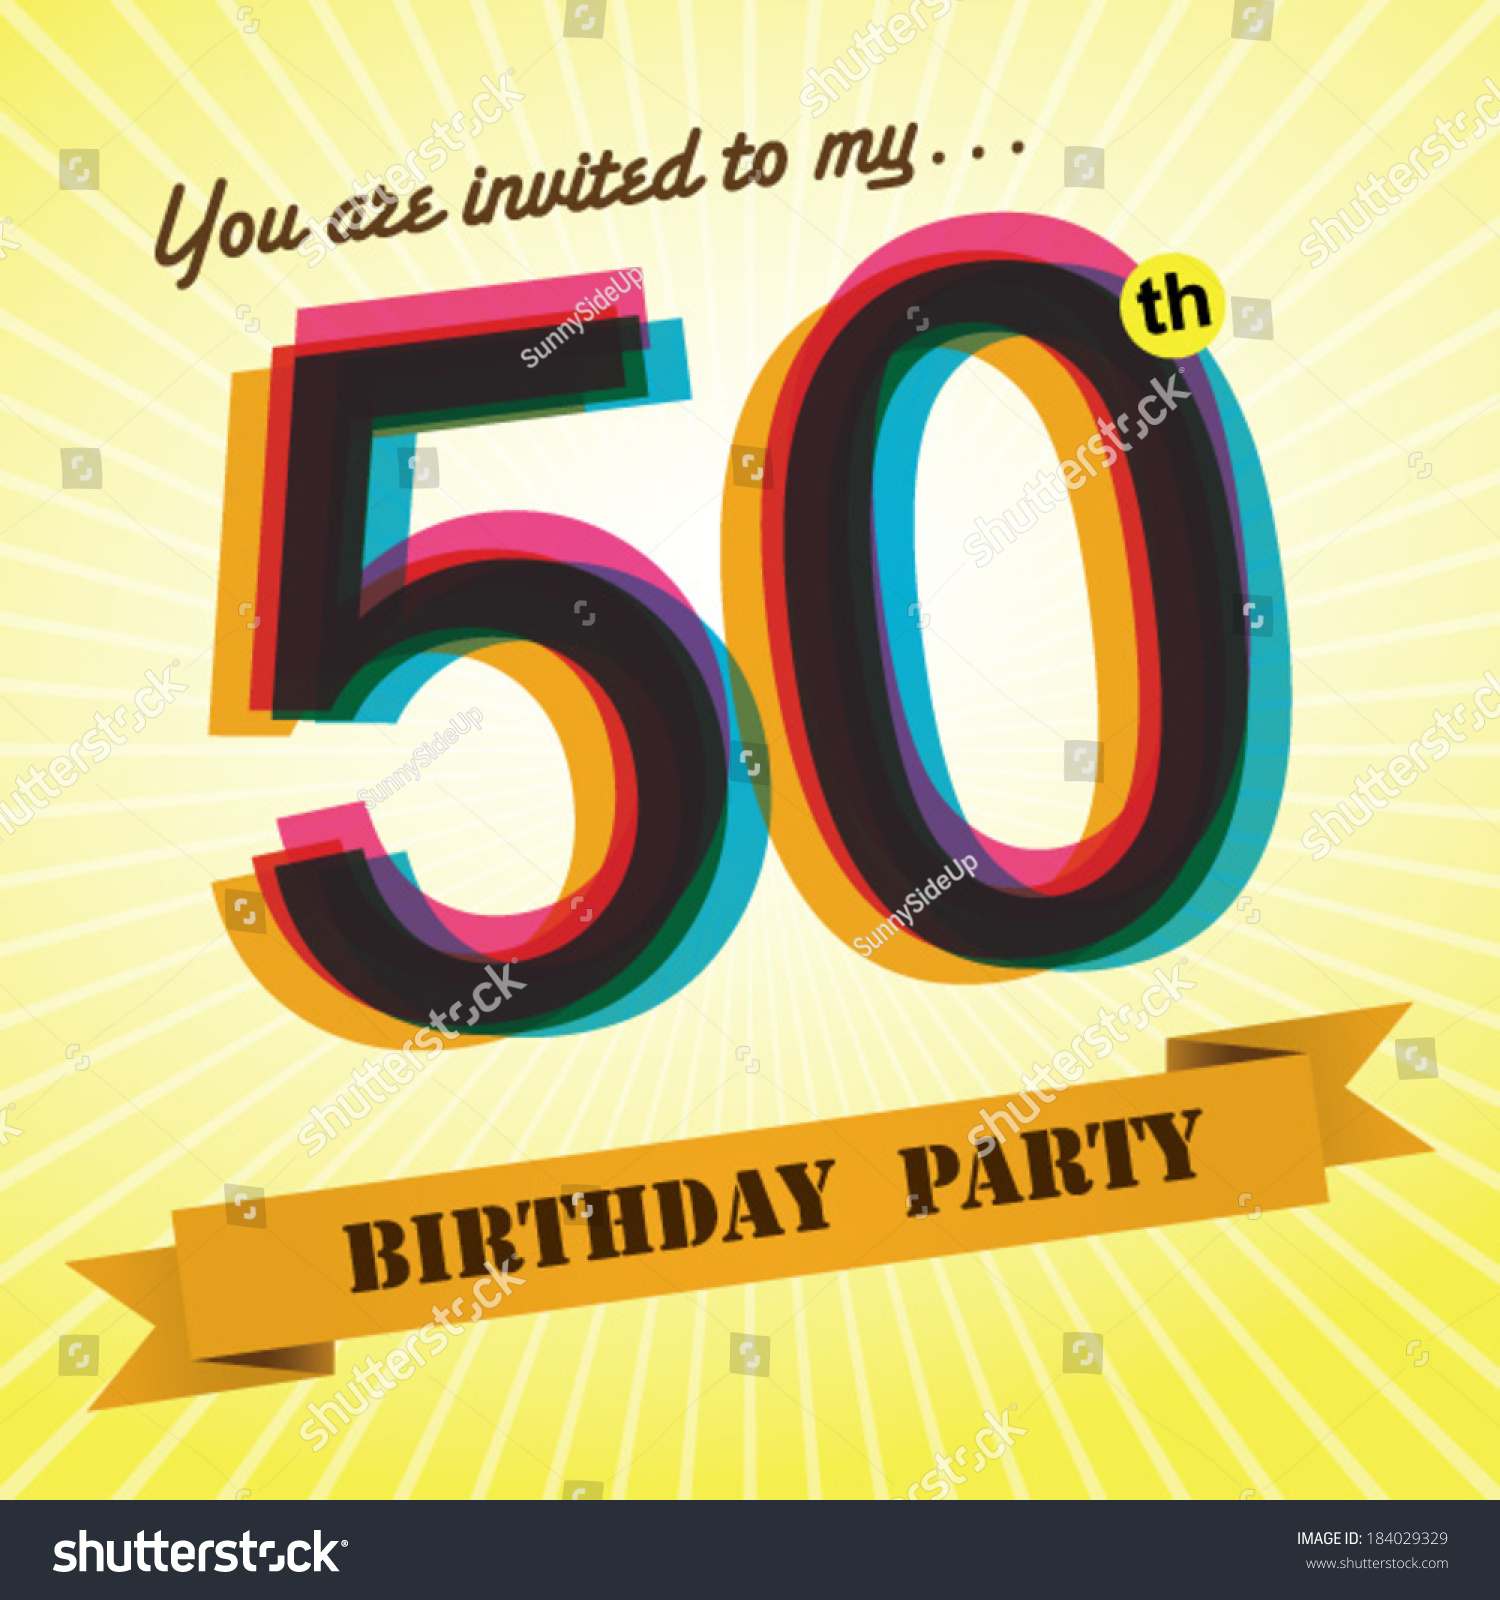 50th Birthday Party Invite Template Design Vector De Stock Libre De